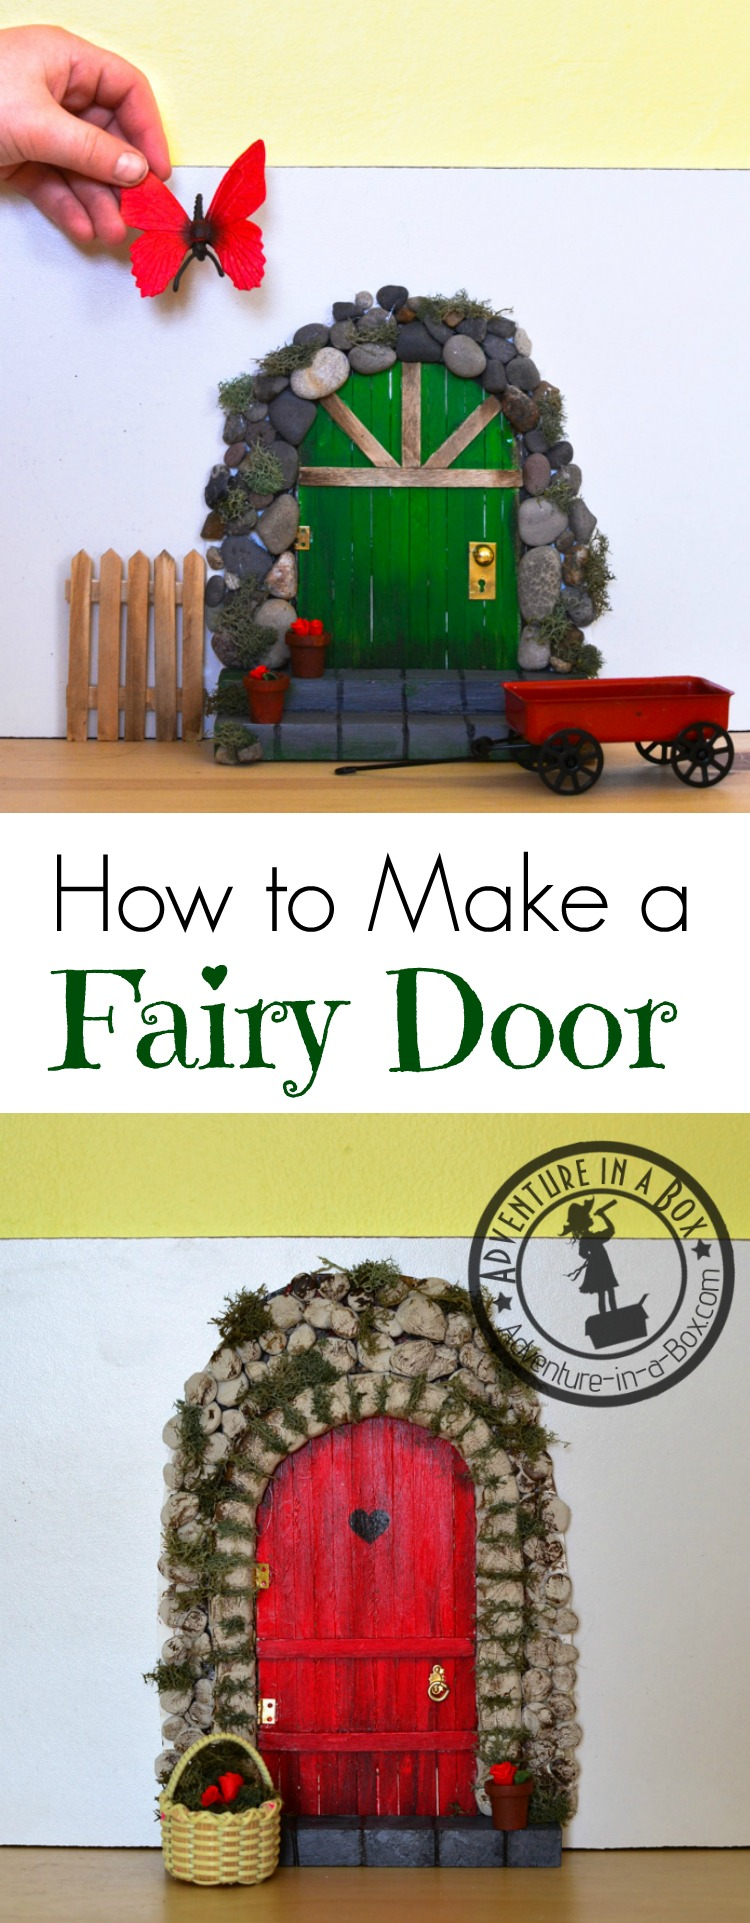 If you make fairy doors, we'd be delighted to see them! You can post ...